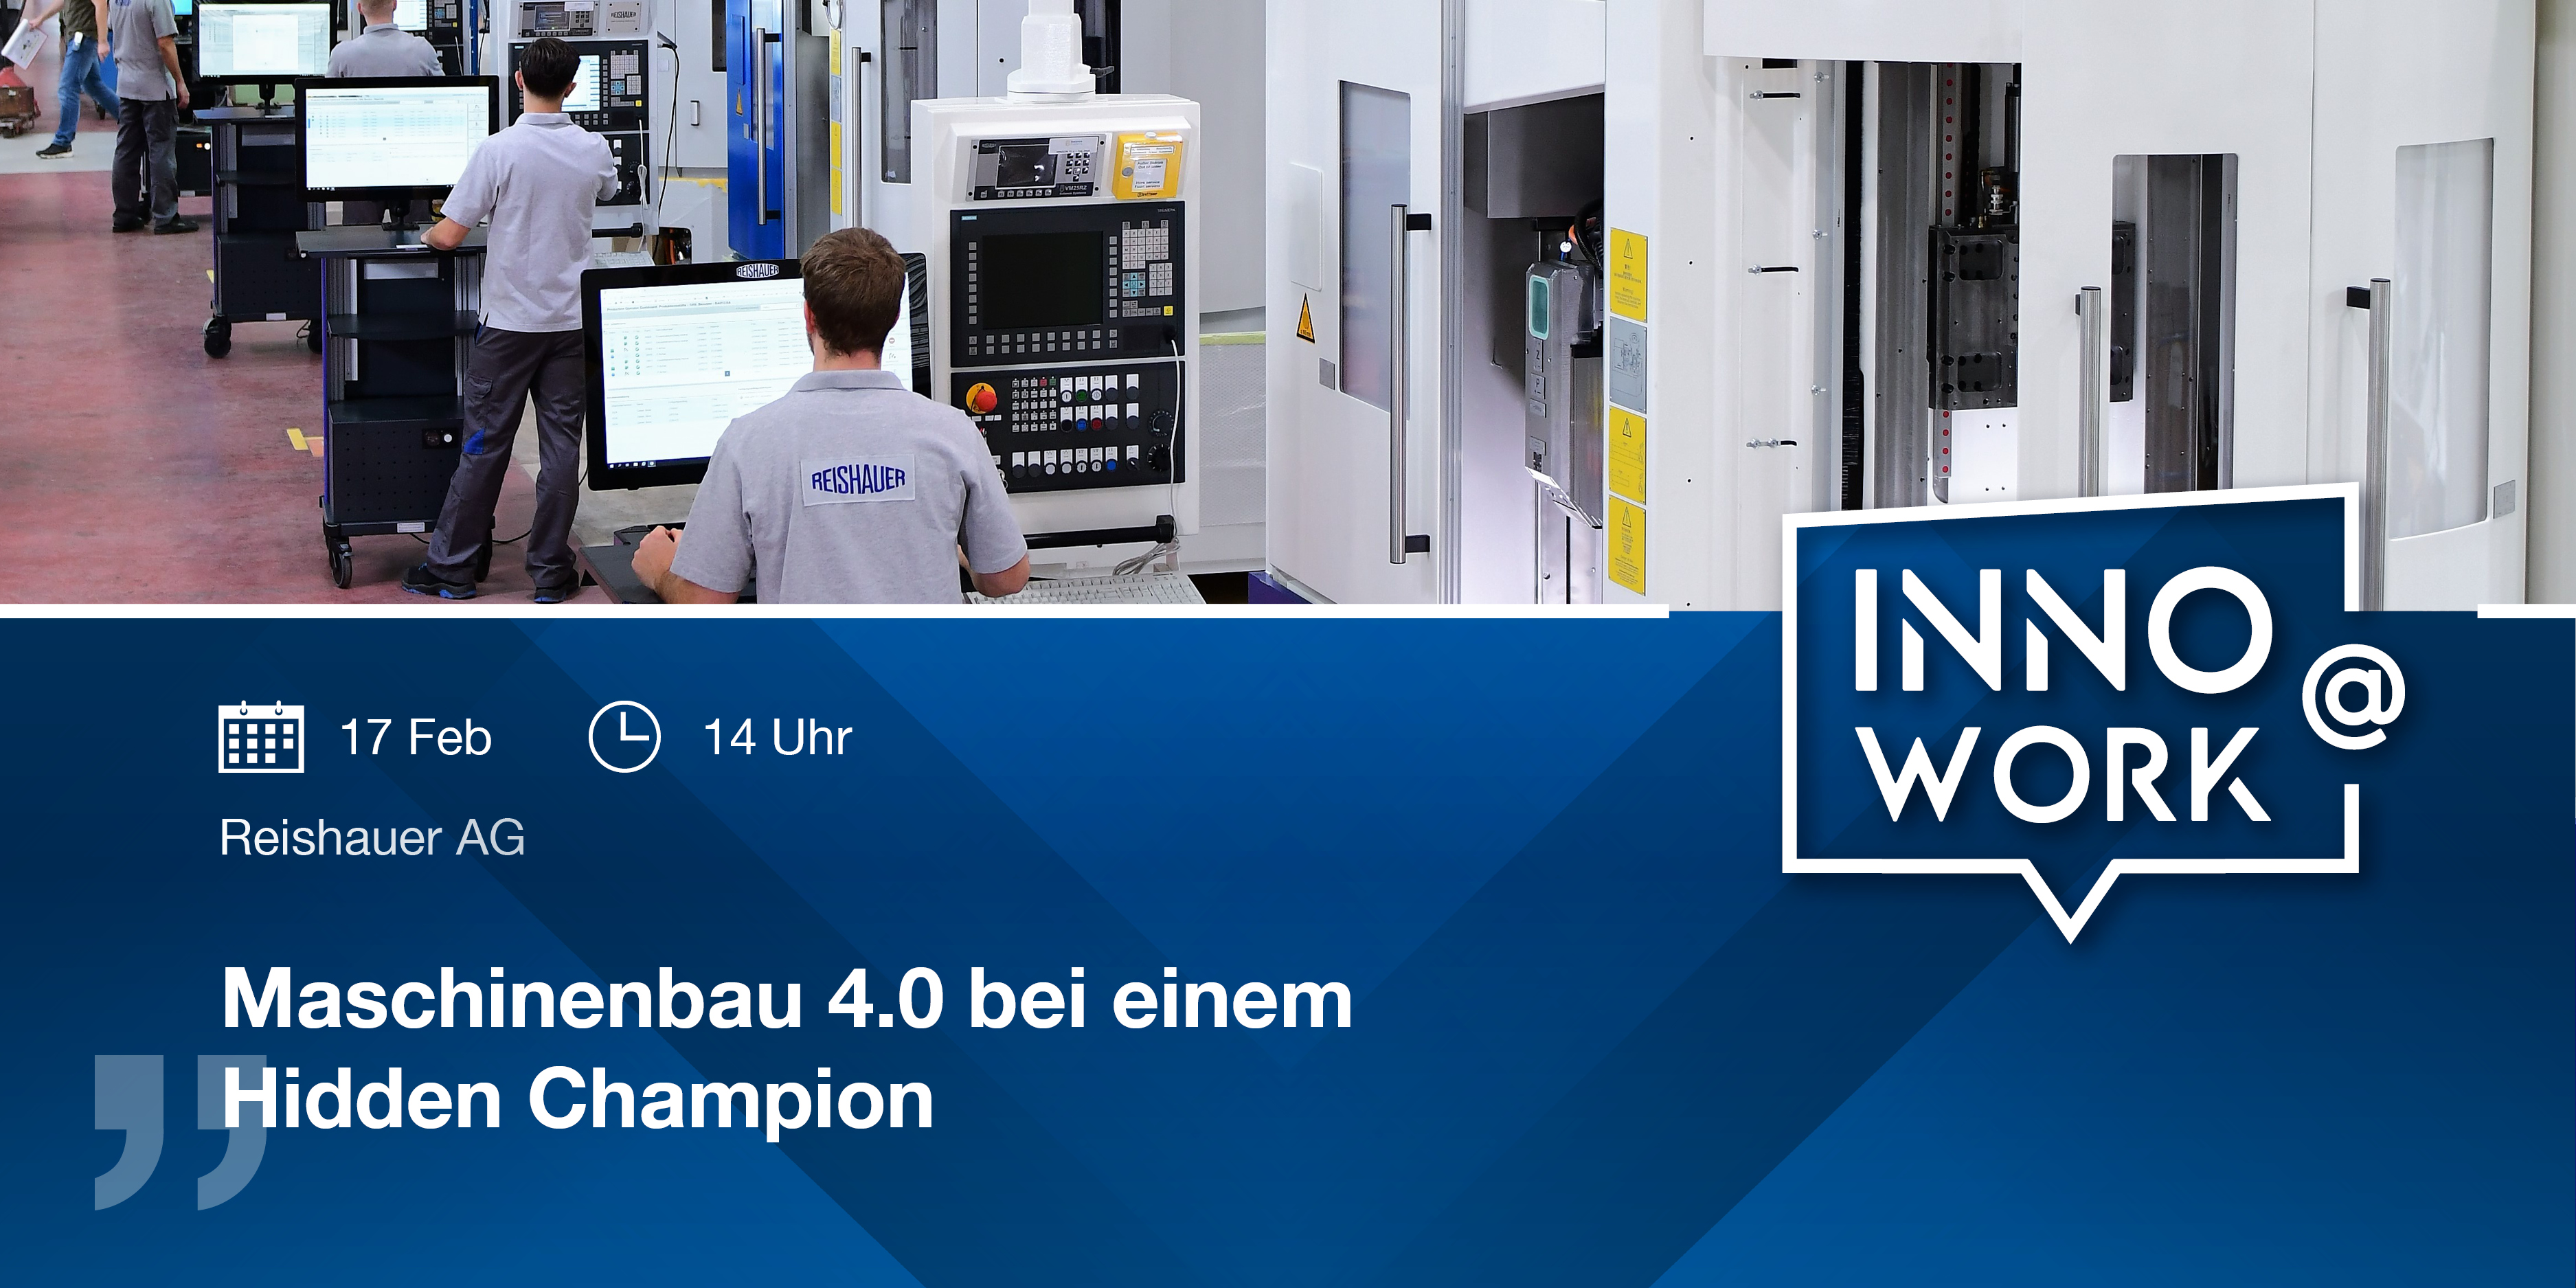 Innovation@Work Webinar Reishauer | IGZ